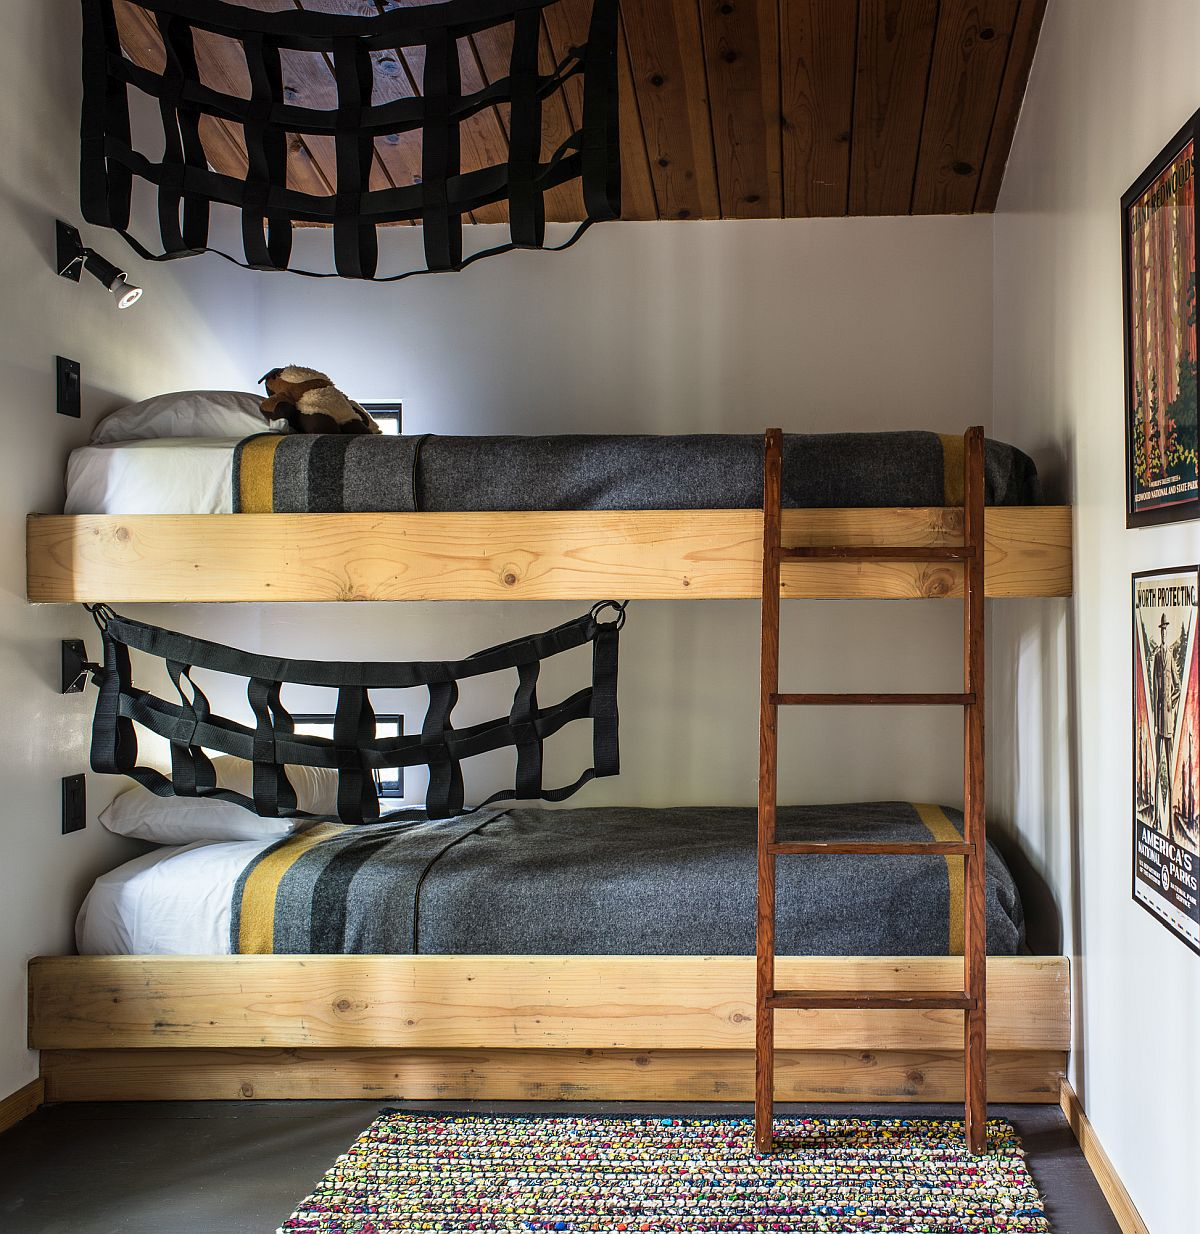 Playful bunk beds along with pullout beds save space inside the cabin bedrooms